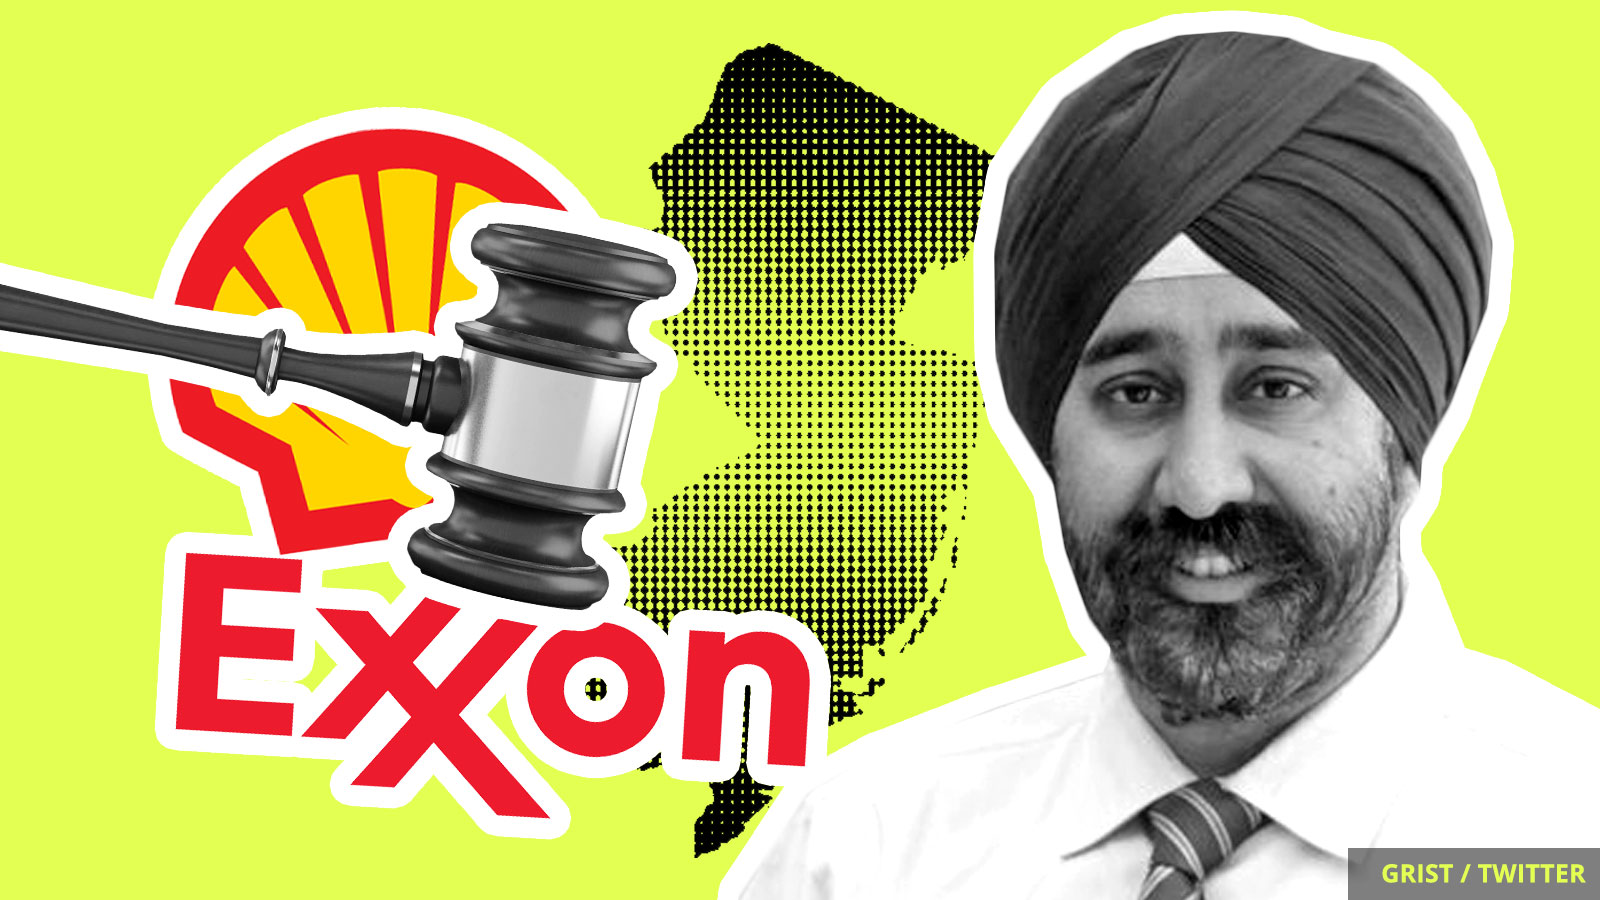 The mayor of Hoboken, New Jersey, a gavel, and logos of Shell and Exxon.